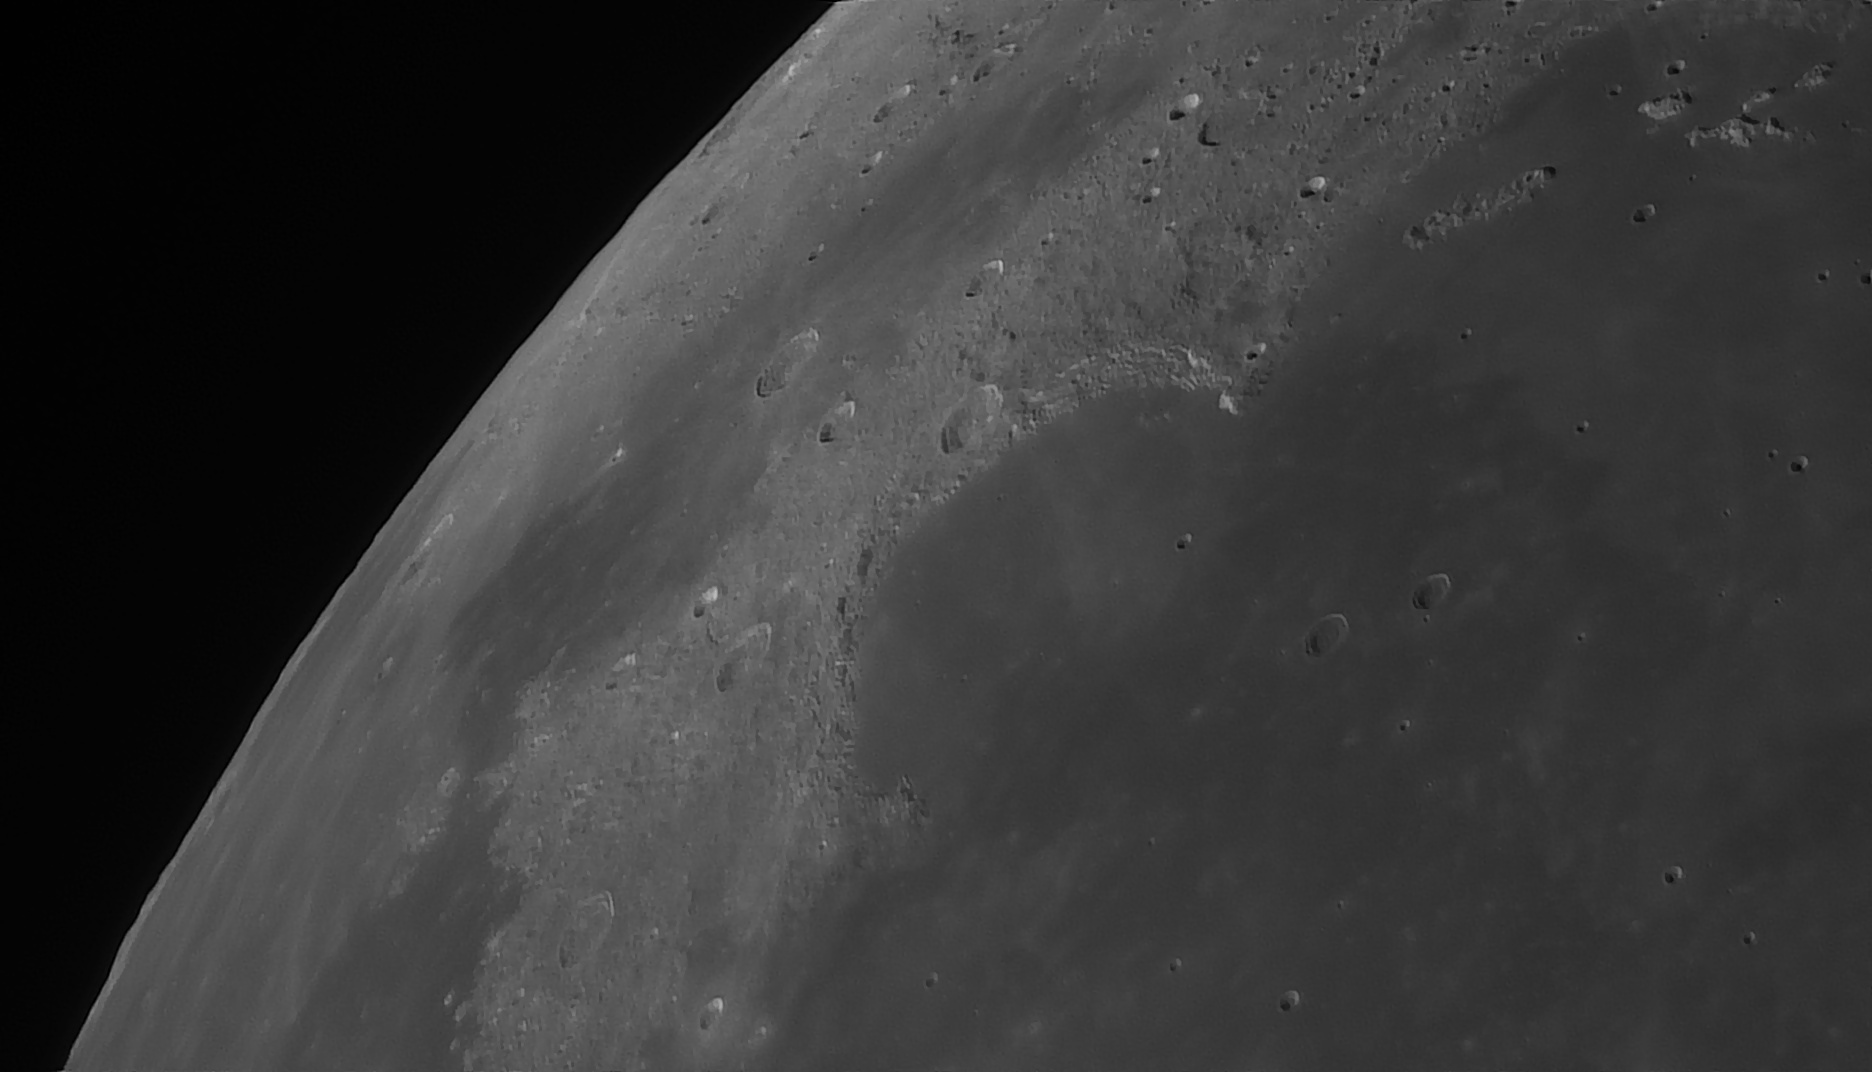 5e5194fd1fb7b_Moon_055112_160120_ZWOASI290MM_Rouge_23A_AS_P35_lapl6_ap890_AI_Deconvolution_6--.jpg.0773c761360aa2f07b924c5111162d34.jpg